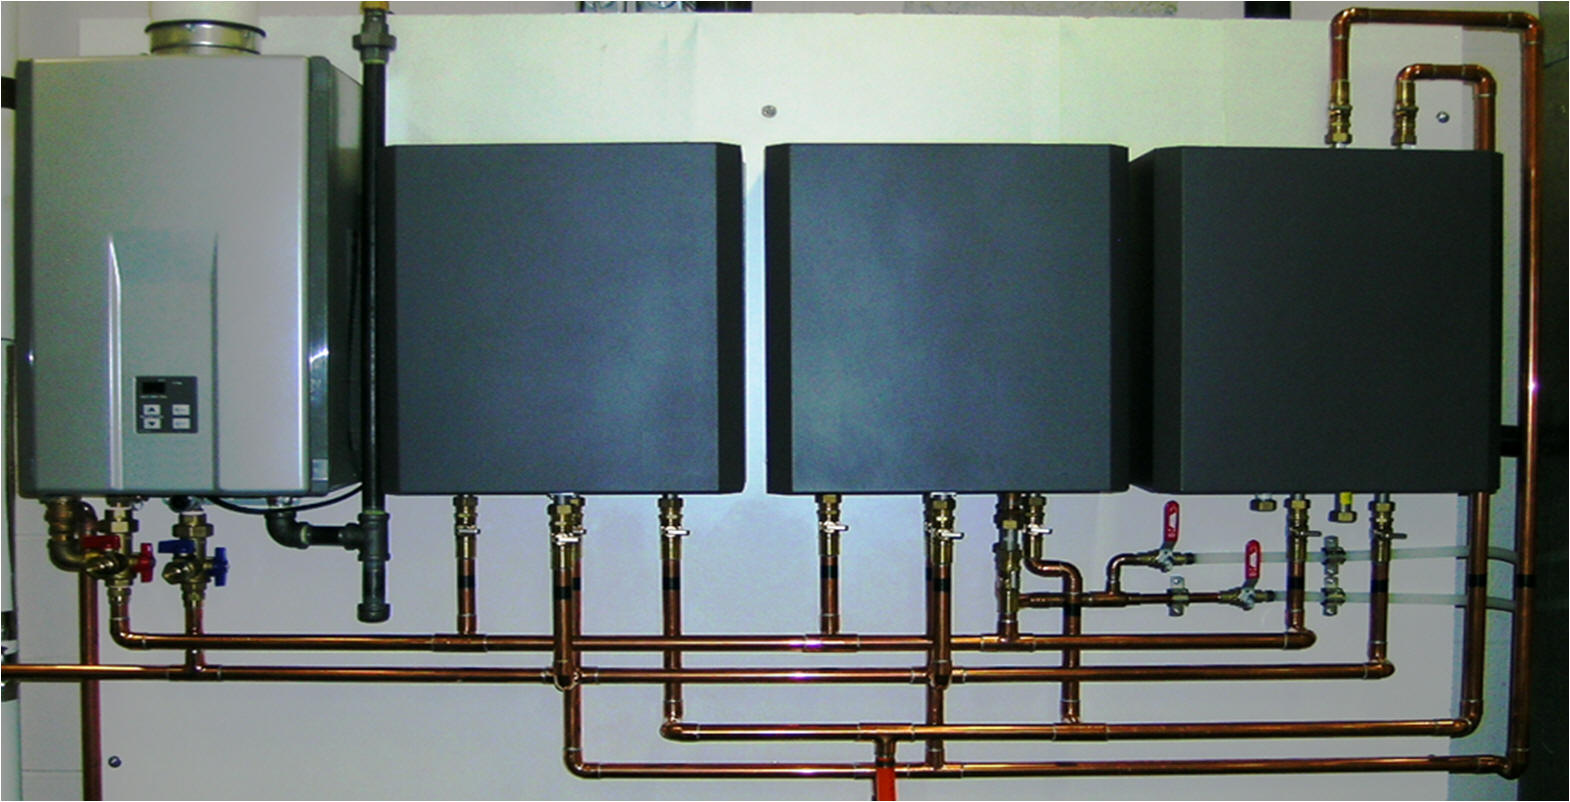 Radiant Heating Installations | The Good, Bad and Ugly